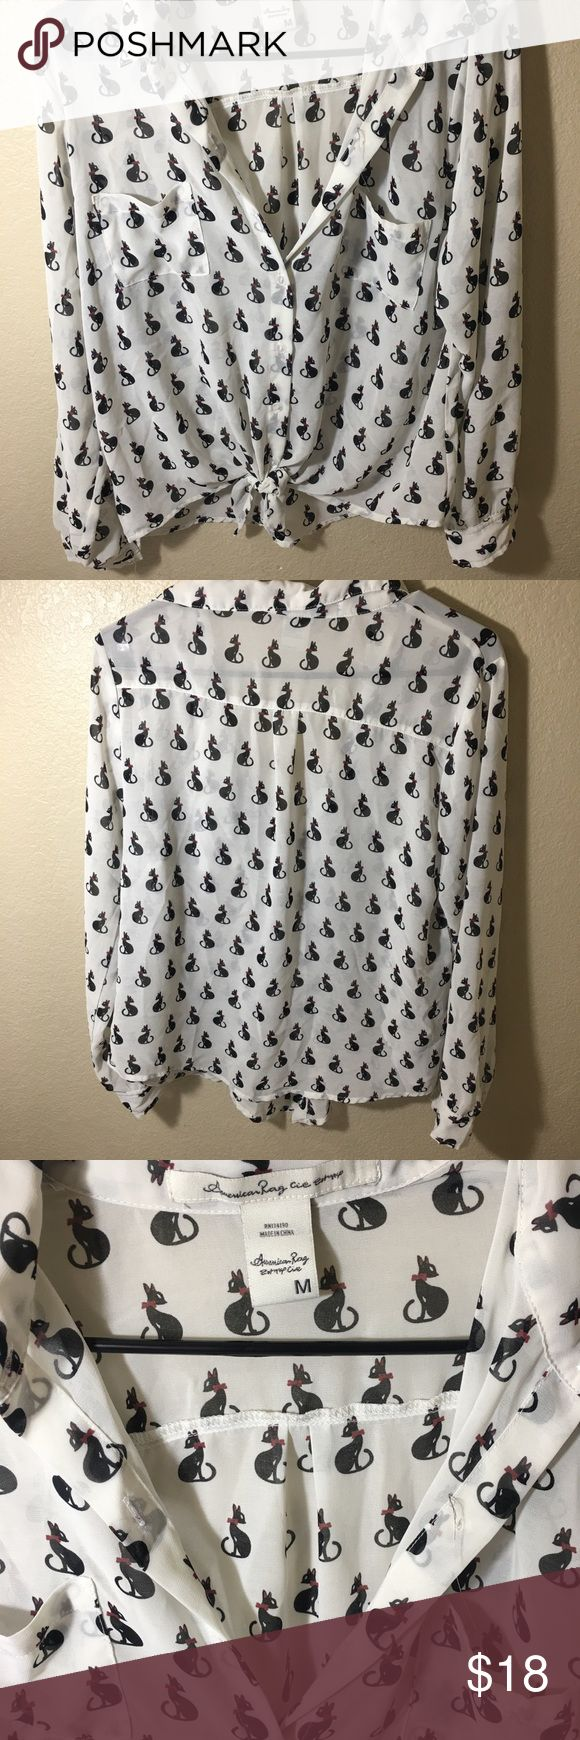 BOGO 50% off American Rag Black Cat top American Rag Black Cat off white long sleeve blouse  Size Medium  Gently used - great condition  Button up with front tie  Perfect for cat lovers  Flash SALE! Buy one get one 50% Buy today it ships today!  Discount applied to lowest priced item(s) - Don't forget to bundle.  One day sale only!   Feel free to ask any questions, and Happy Poshing! American Rag Tops Button Down Shirts